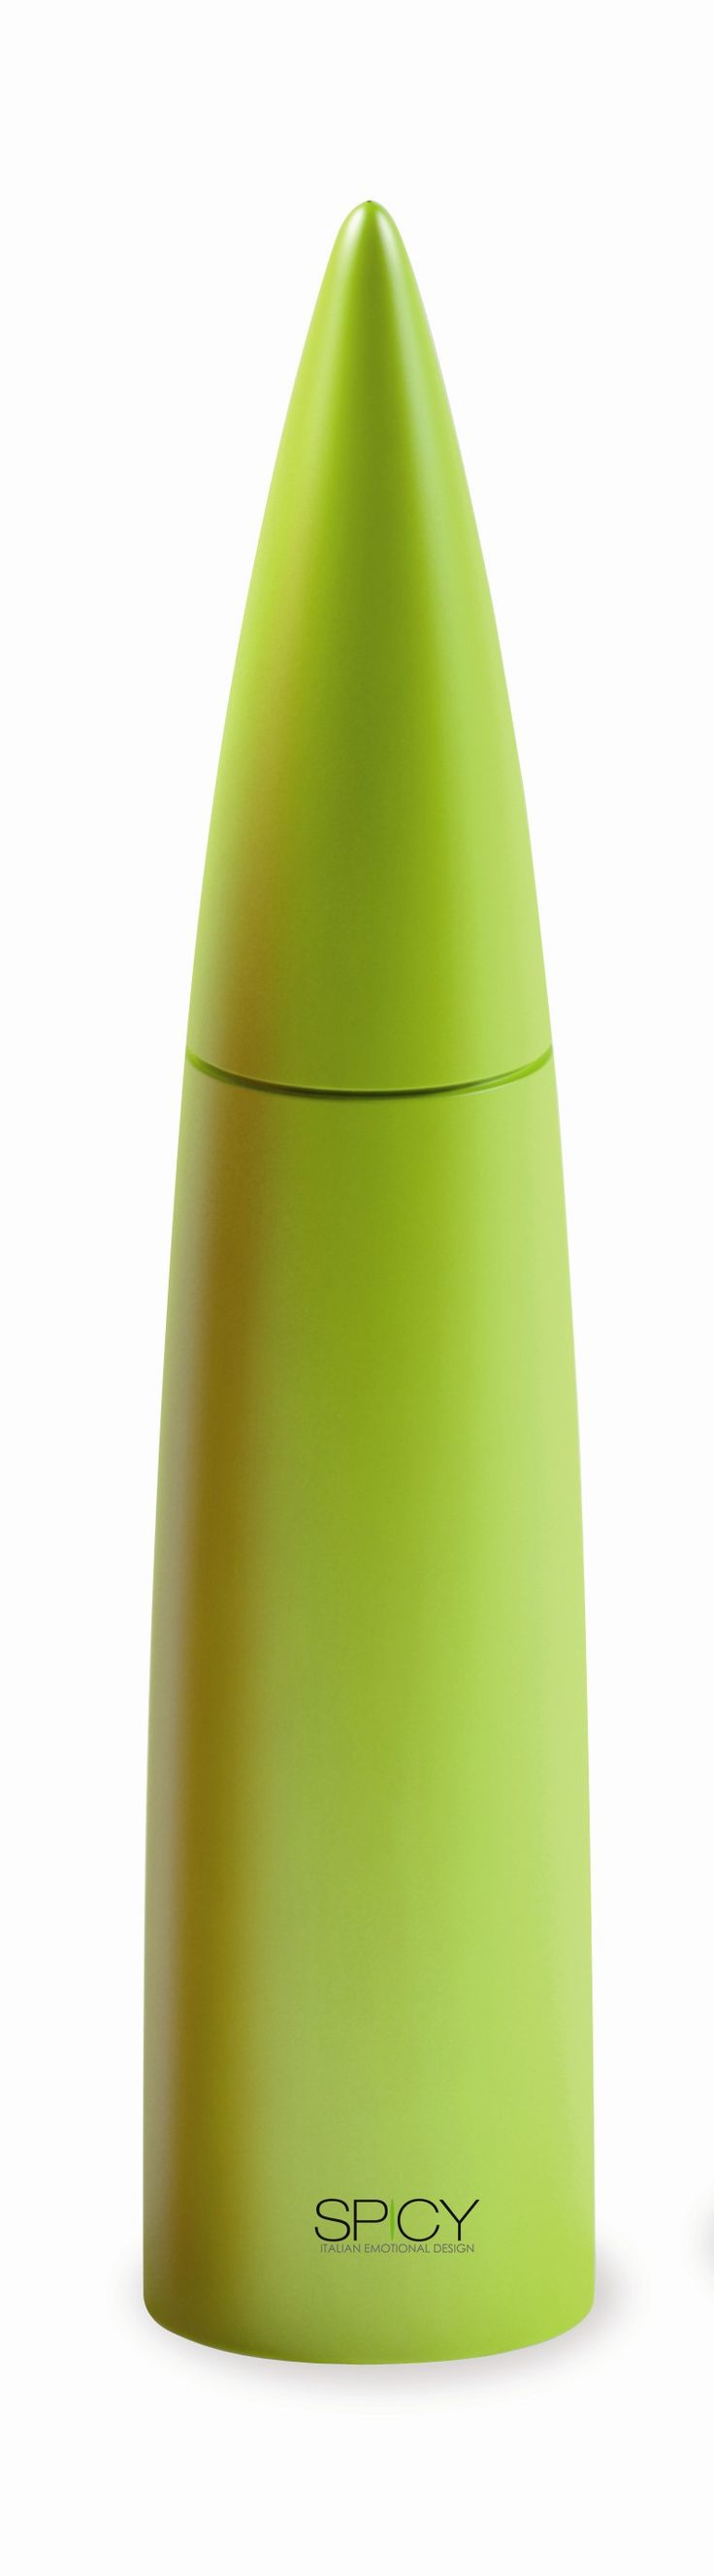 "Spicy Piperis Salt/Peppermill – Green  Product Description  Peppermill with long-life ceramic mechanism. Also suitable to grind salt, spices and coffee. Soft-touch finish. Height:12.5″ Width: 2.5"" Hand wash recommended Designed by Federico Arquint"